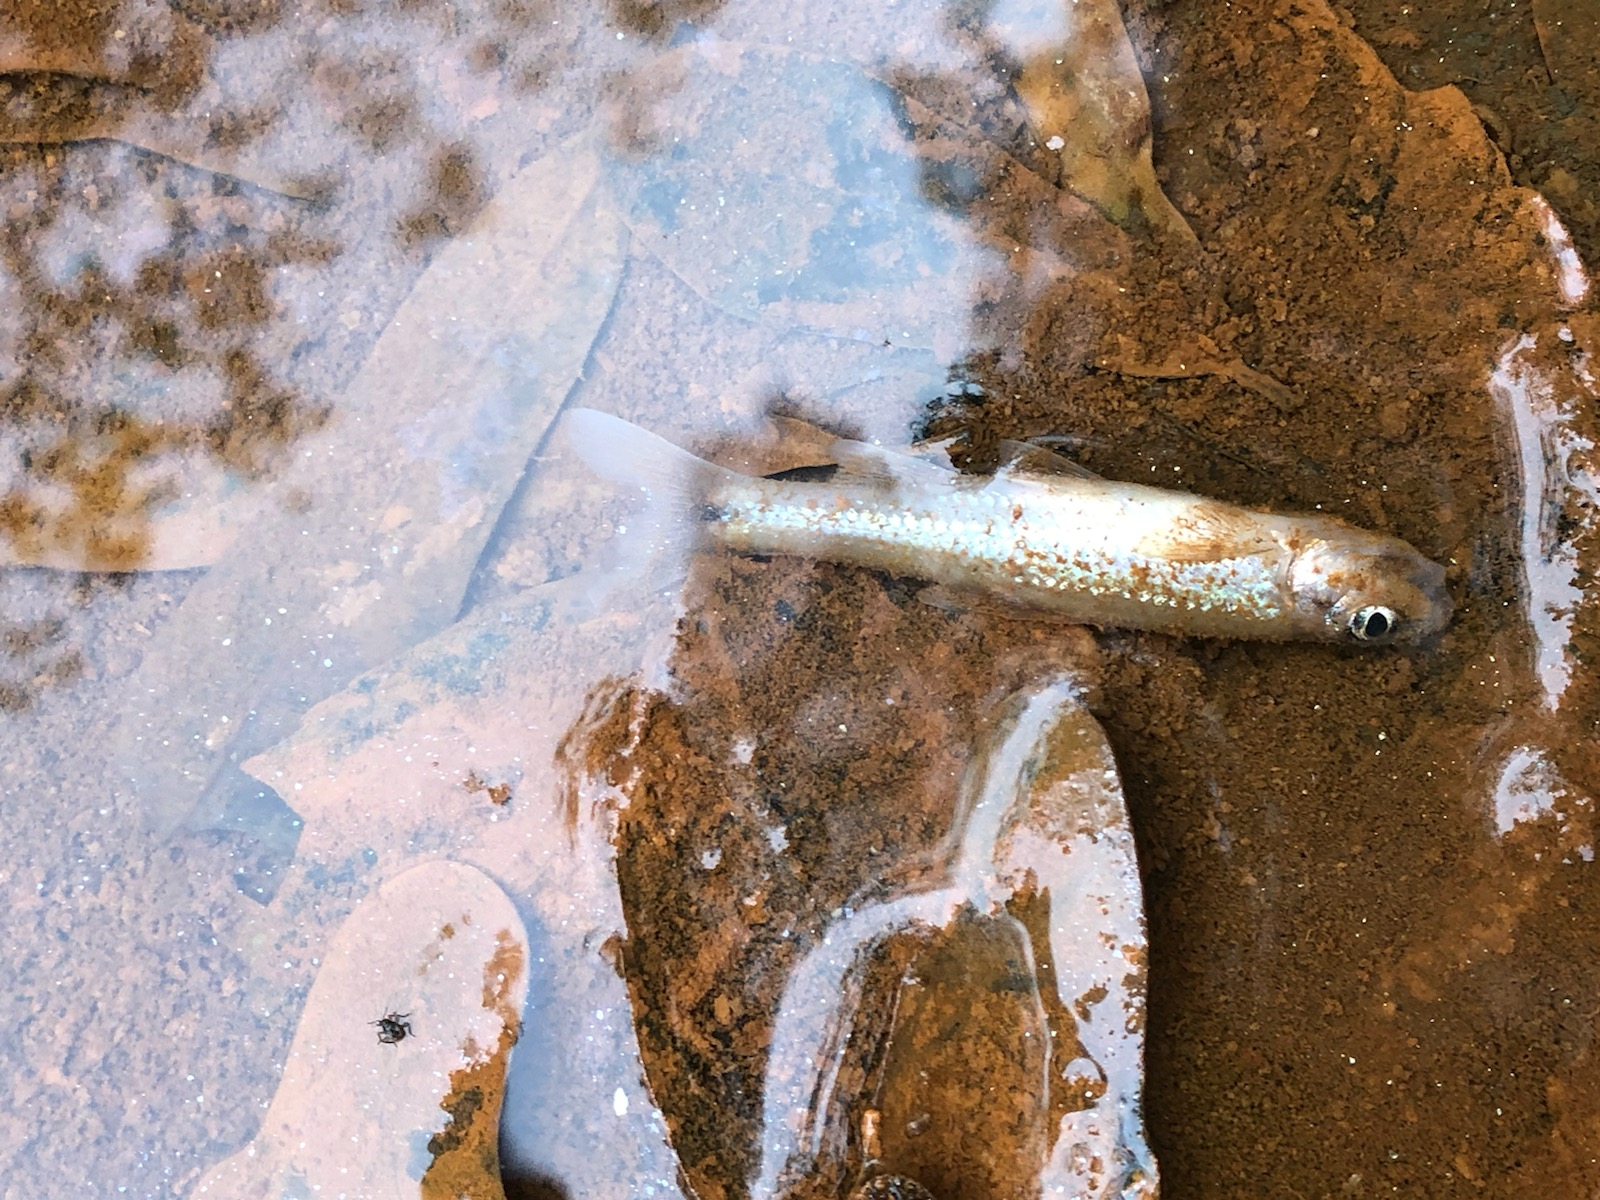 Residents along Indian Creek in northern Franklin County found stinking, black water in the creek Saturday and dead fish. It has been determined that the pollution came from runoff from fire suppressing efforts at the new energy plant on Highway 198.